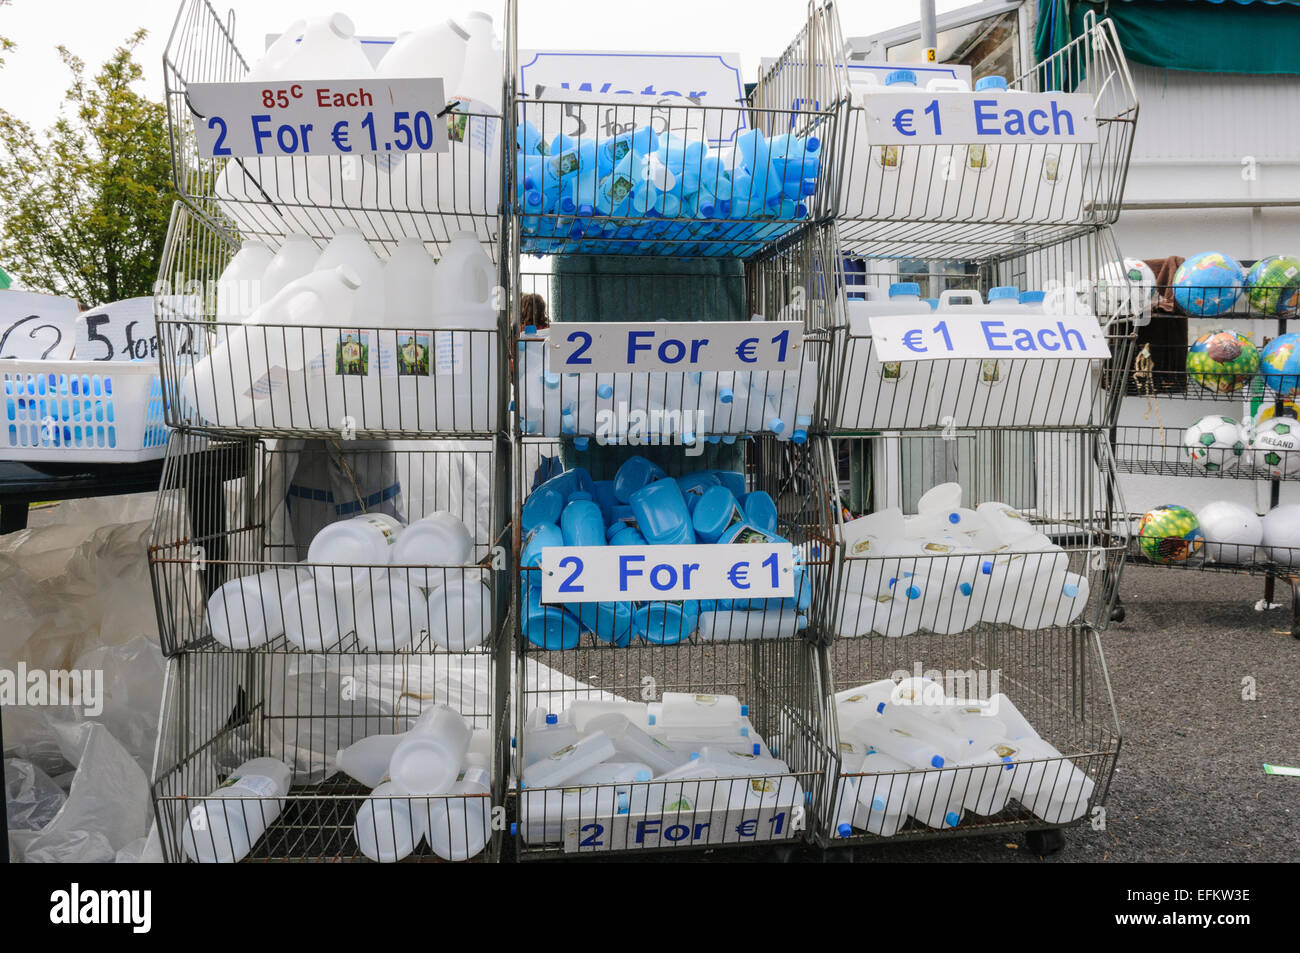 Bottles for holy water on sale at Knock, Ireland Stock Photo